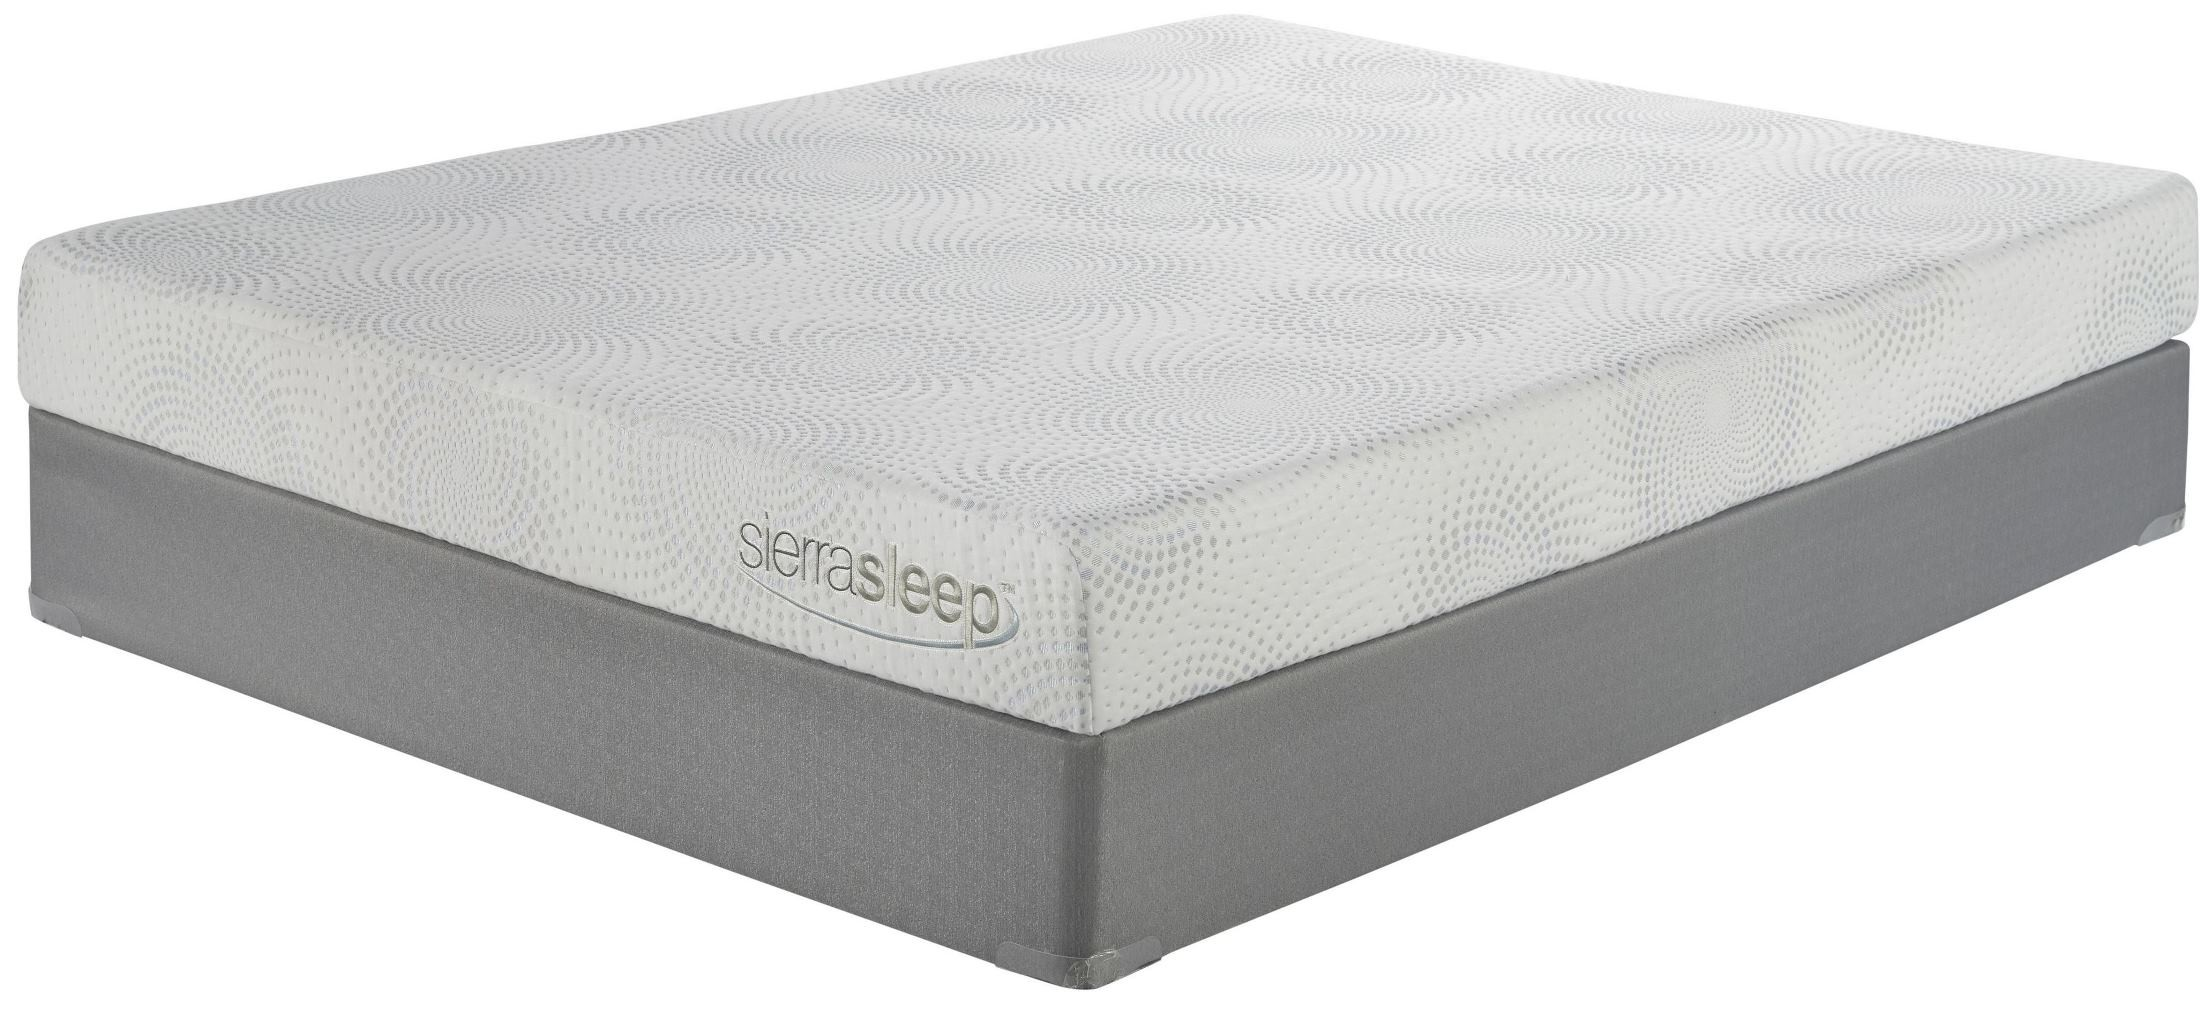 7 Inch Gel Memory Foam White Cal King Mattress From Ashley M97151 Coleman Furniture